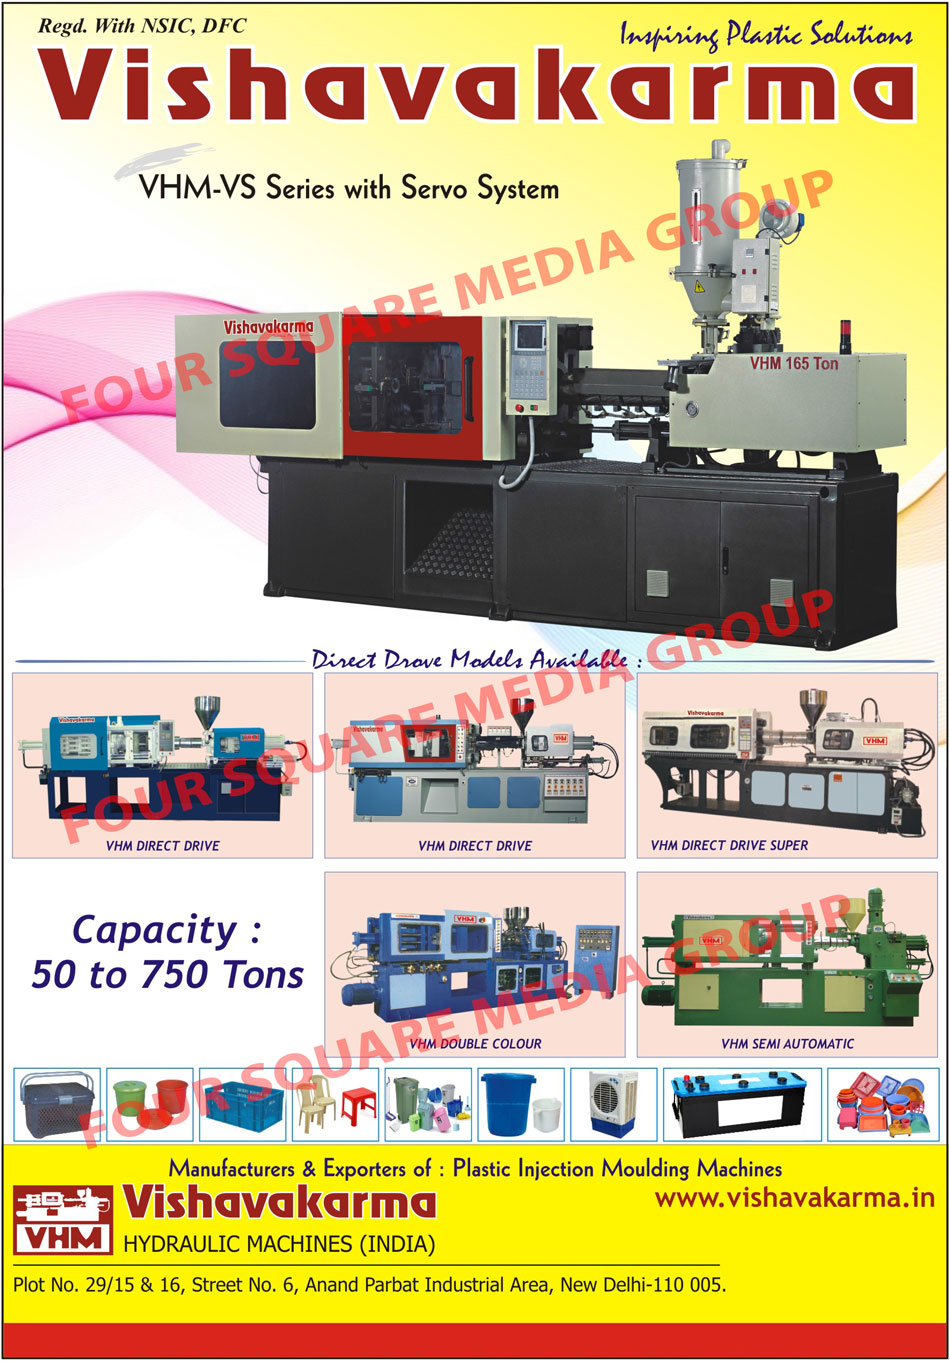 Plastic Injection Moulding Machines,Injection Moulding Machine, Moulding Machine, Plastic Injection Moulding Machine, Moulding Machines, Direct Drive Injection Moulding Machine, Automatic Injection Moulding Machine, Semi Automatic Injection Moulding Machine, Large Moulding Machine